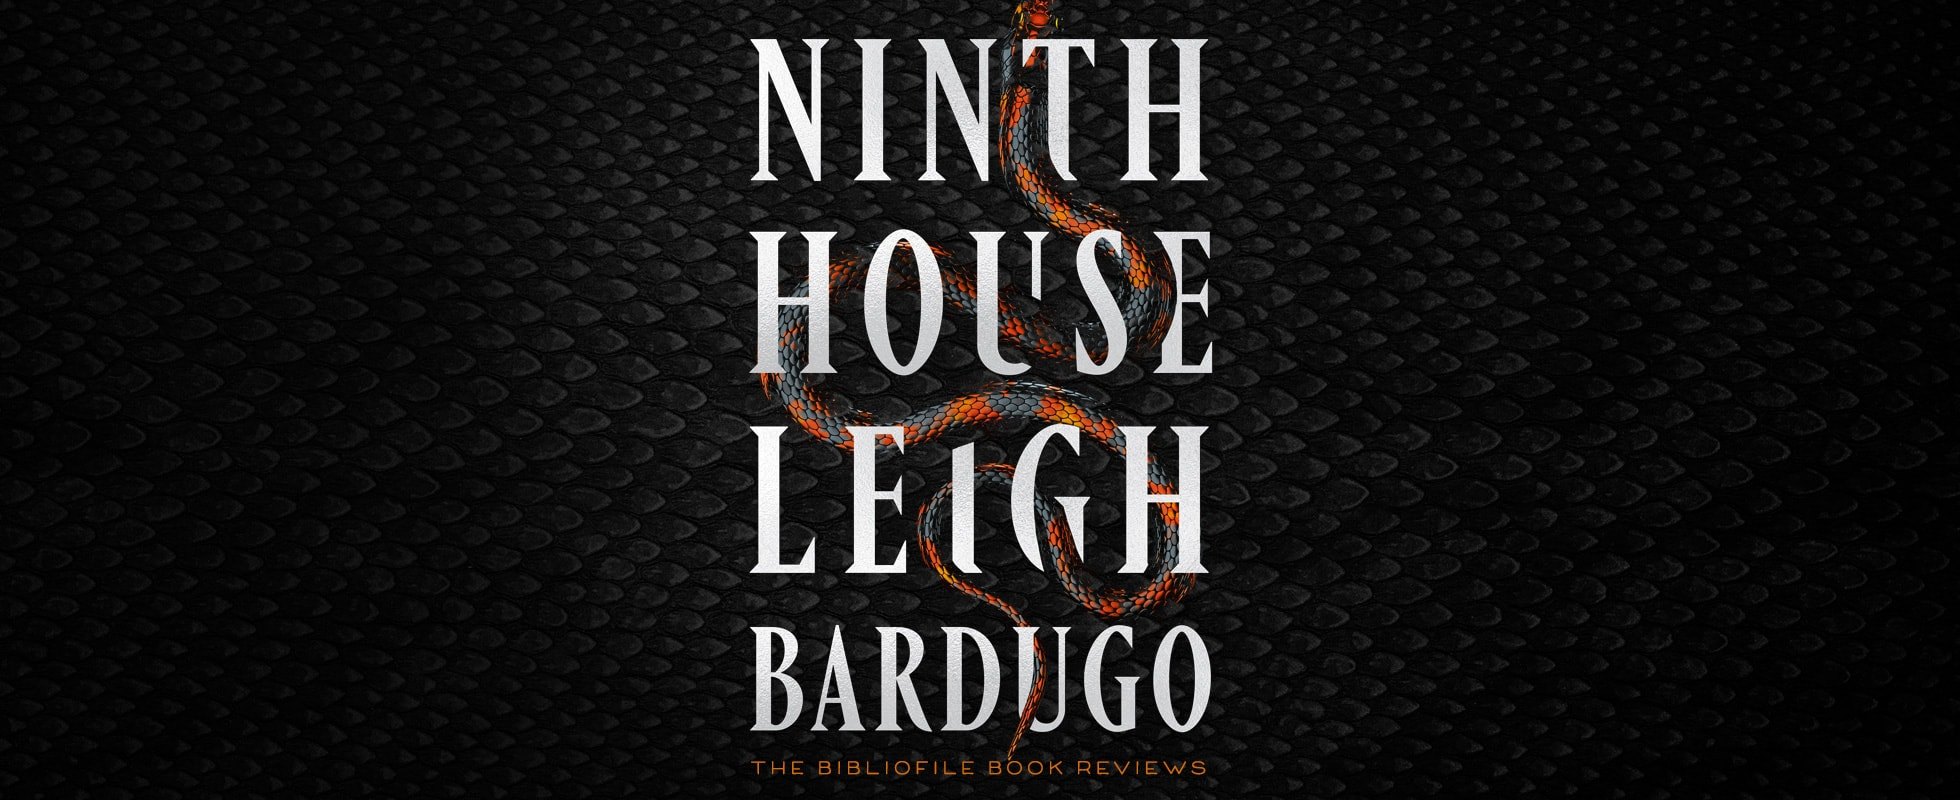 ninth house leigh bardugo book review summary synopsis